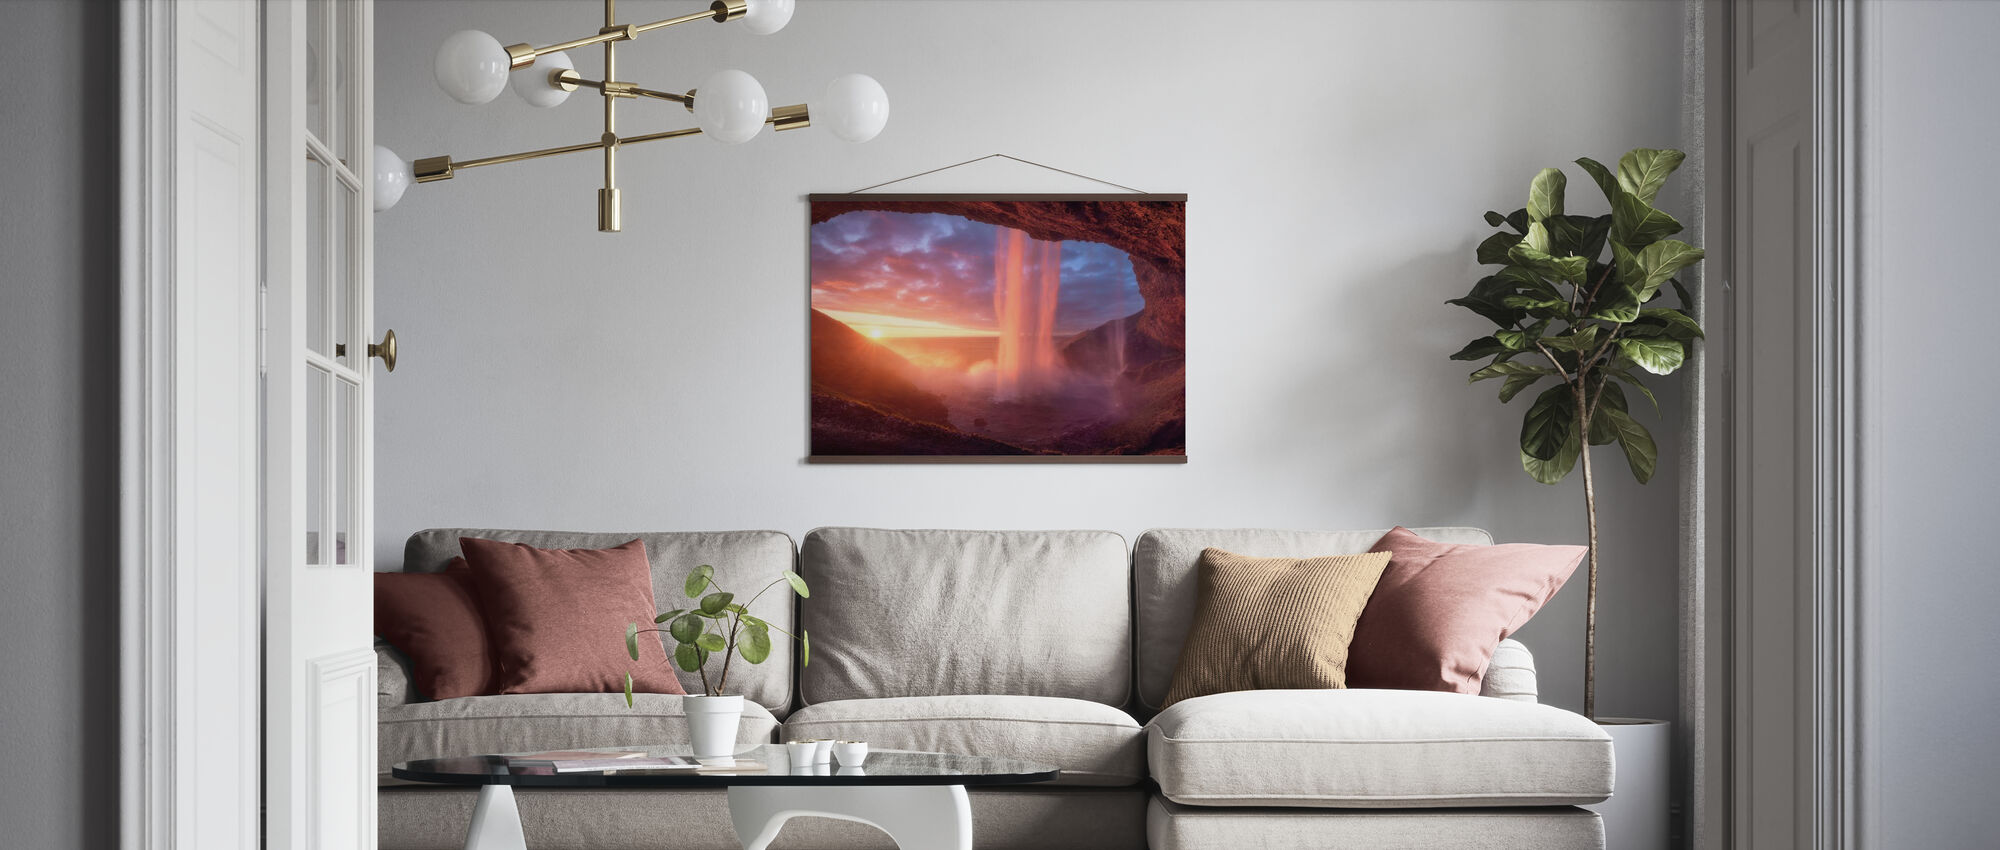 Wall of Flames - Poster - Living Room